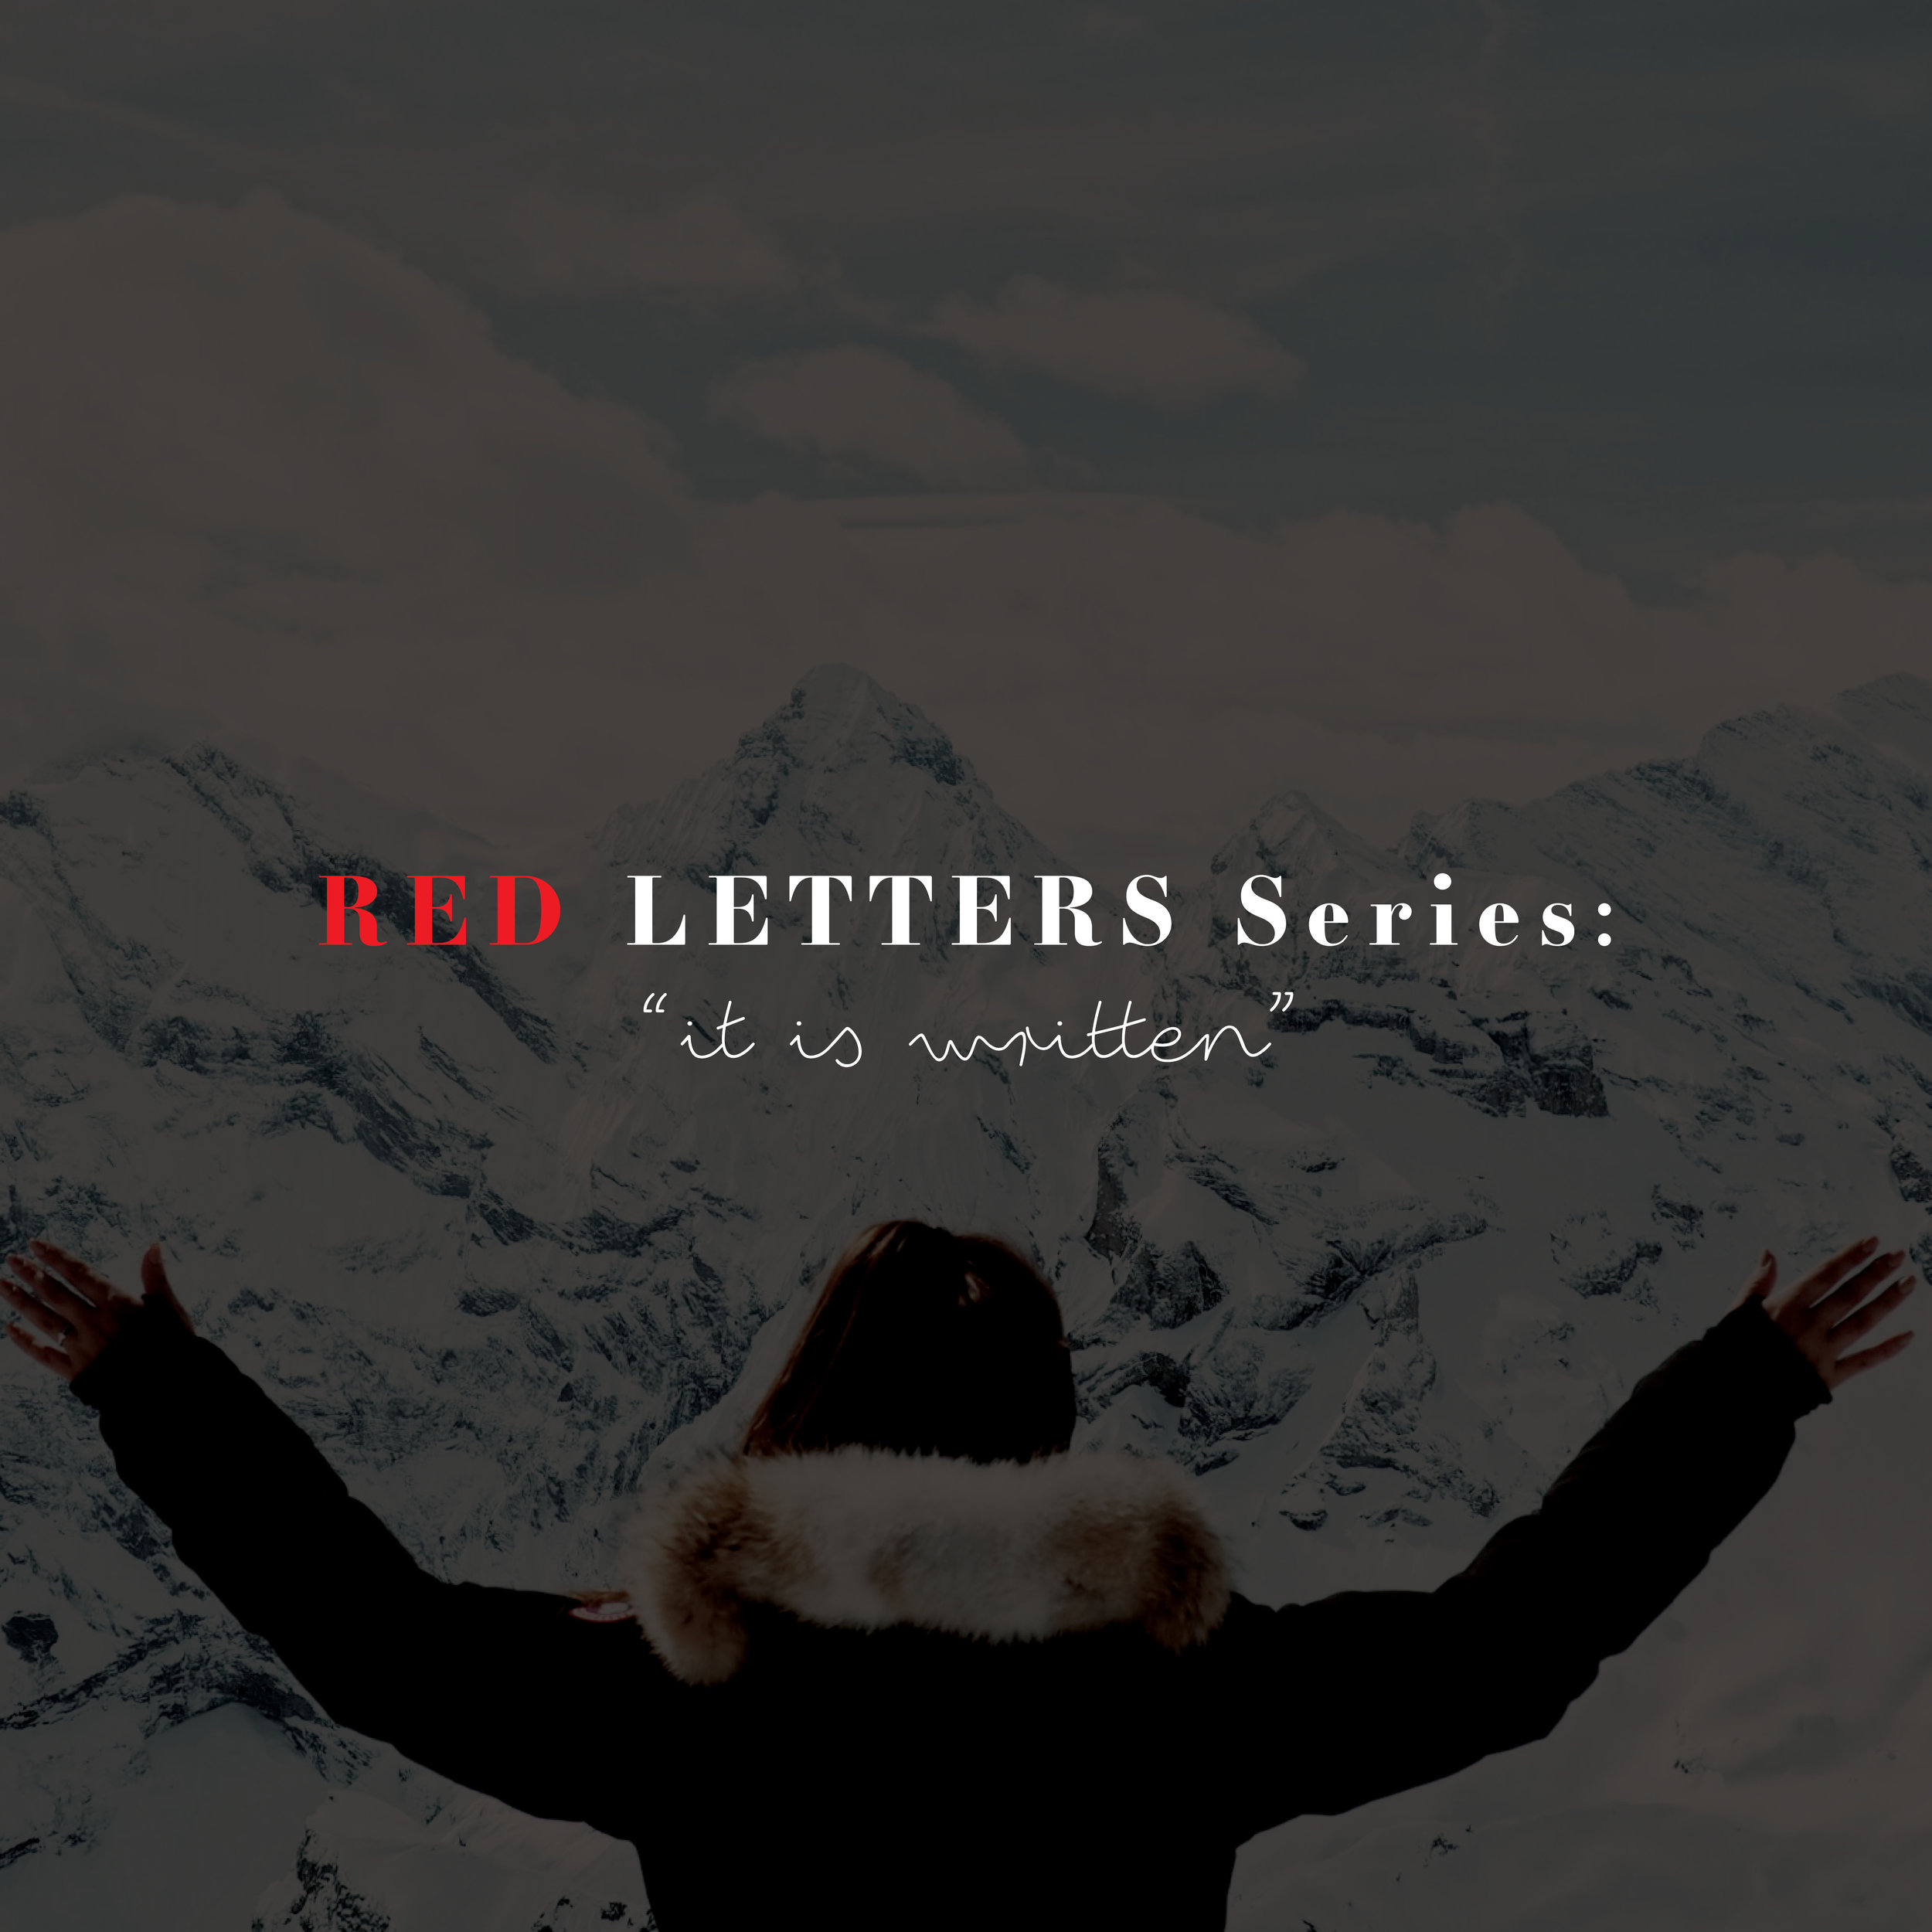 Red Letters Series